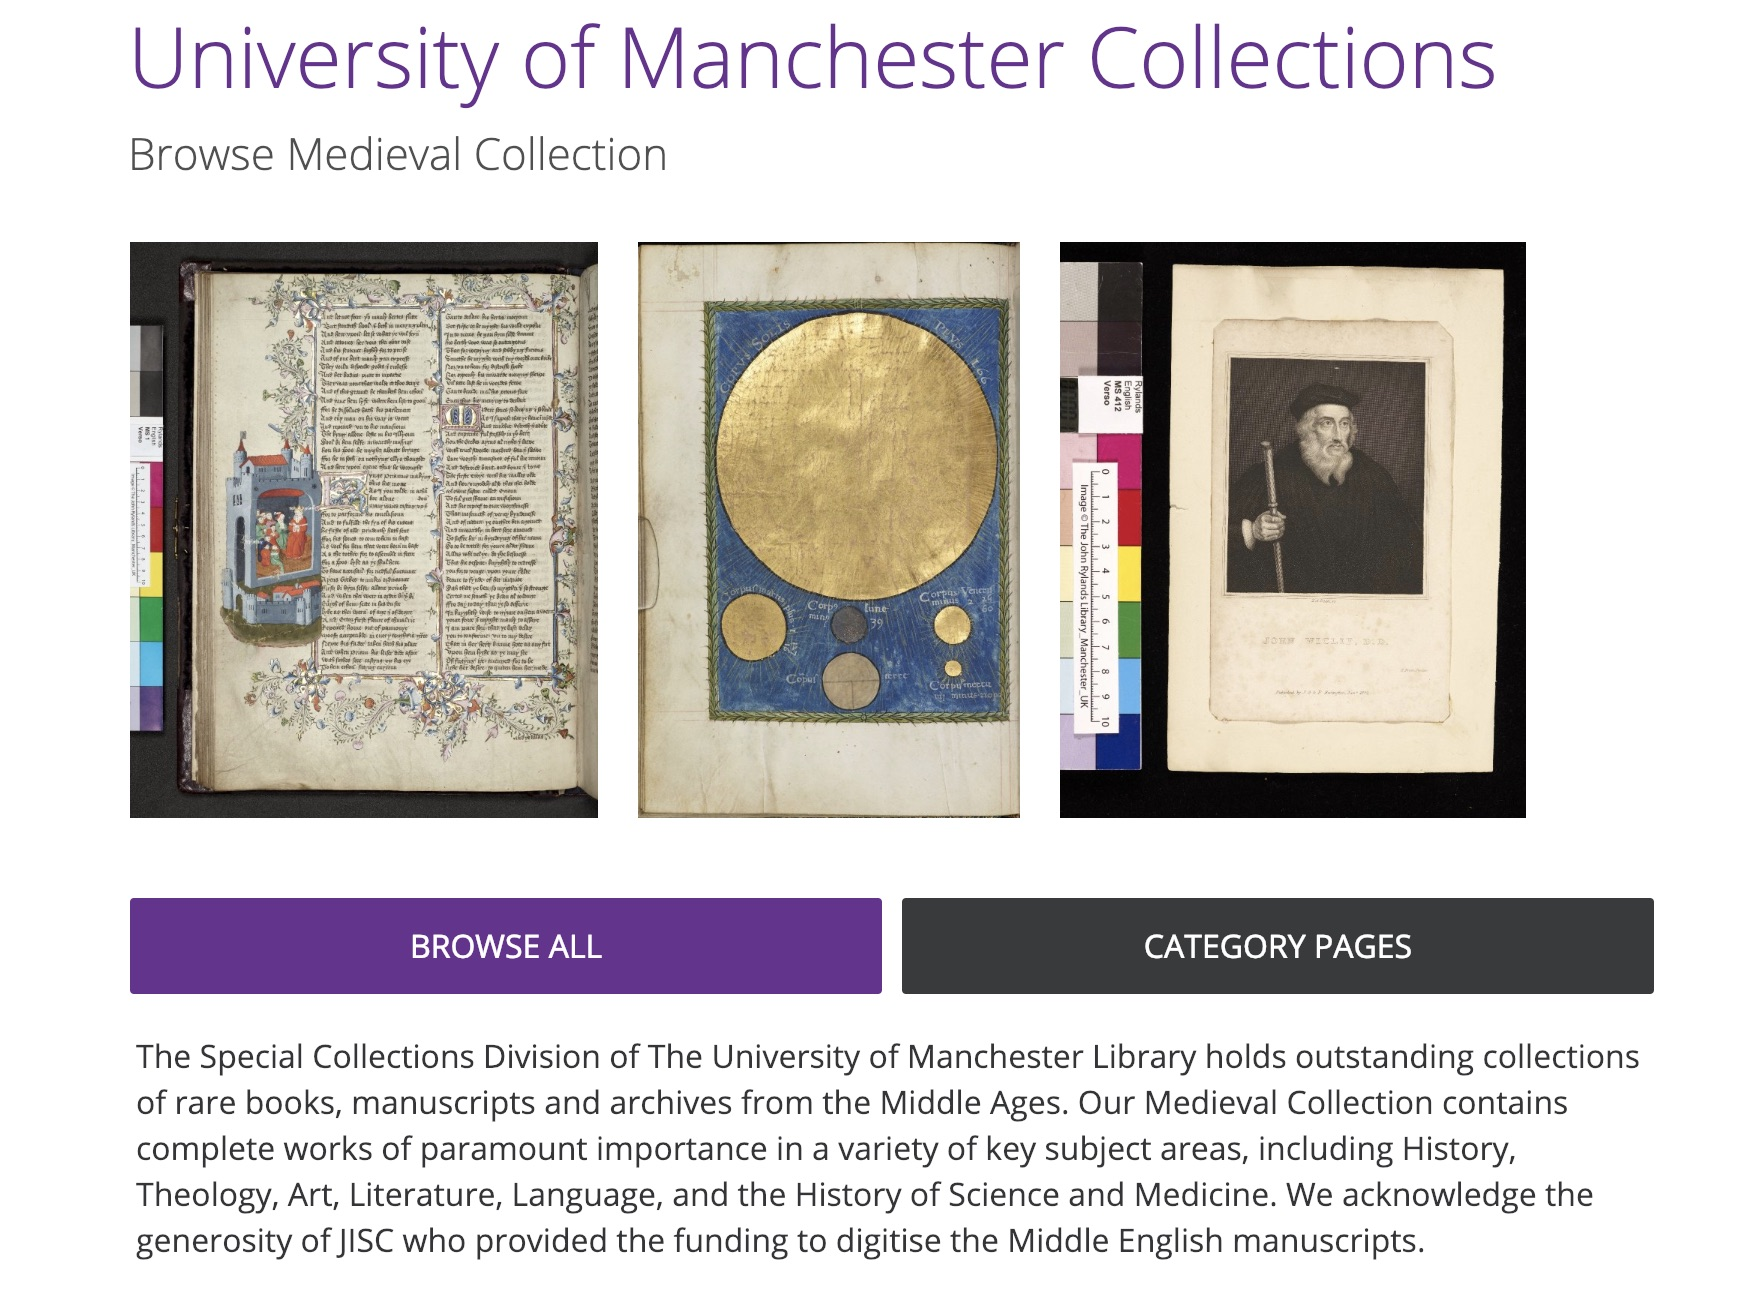 University of Manchester Medieval Collection